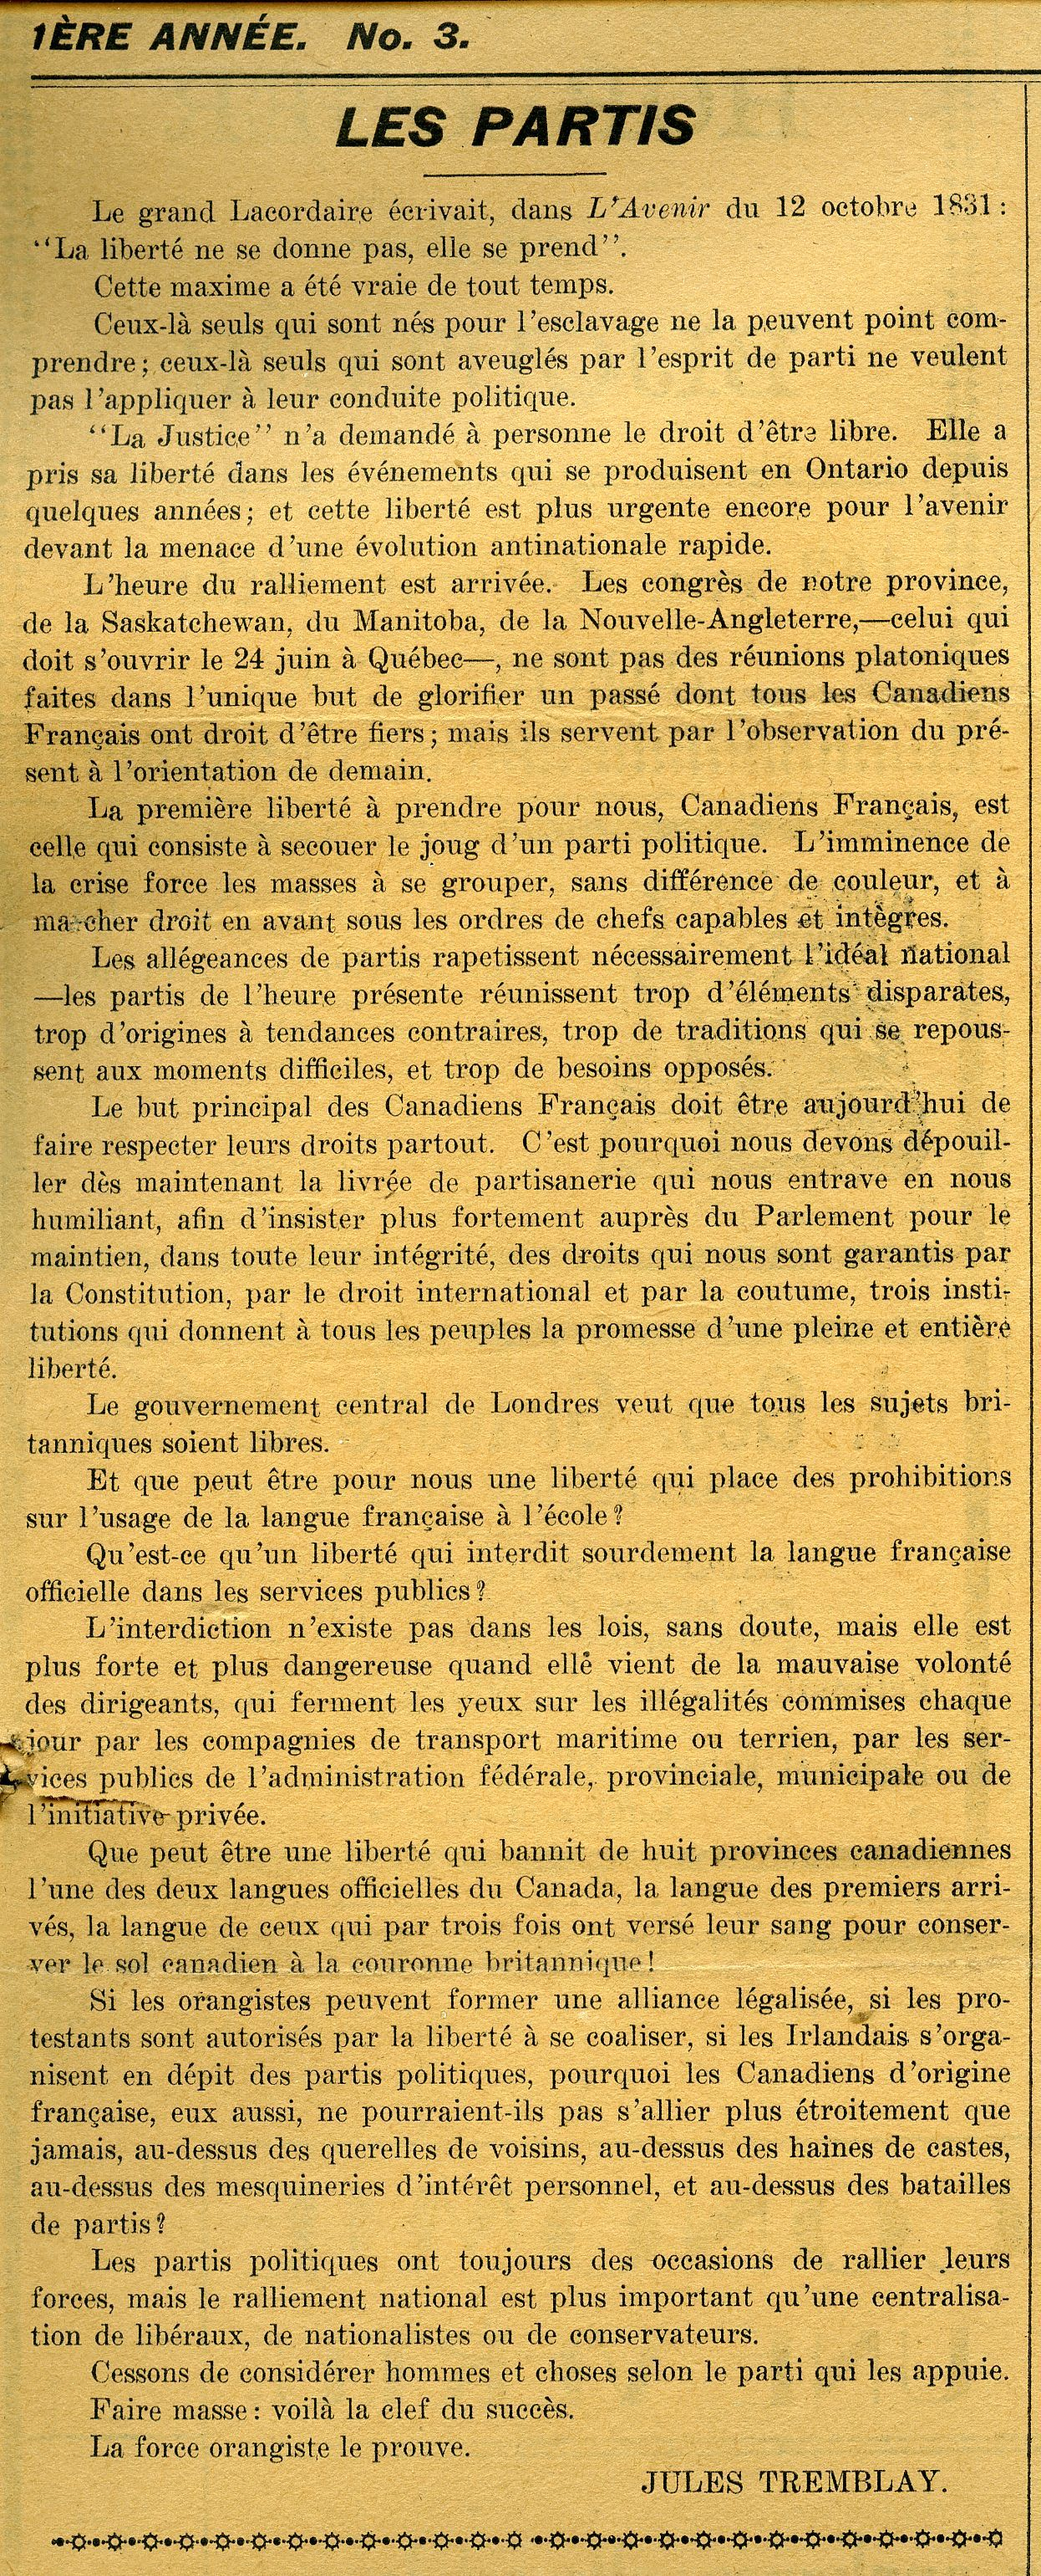 Newspaper article printed in French. The title appears in uppercase and bold, followed by the text, arranged in a single column. The article is signed. The paper is yellowed.